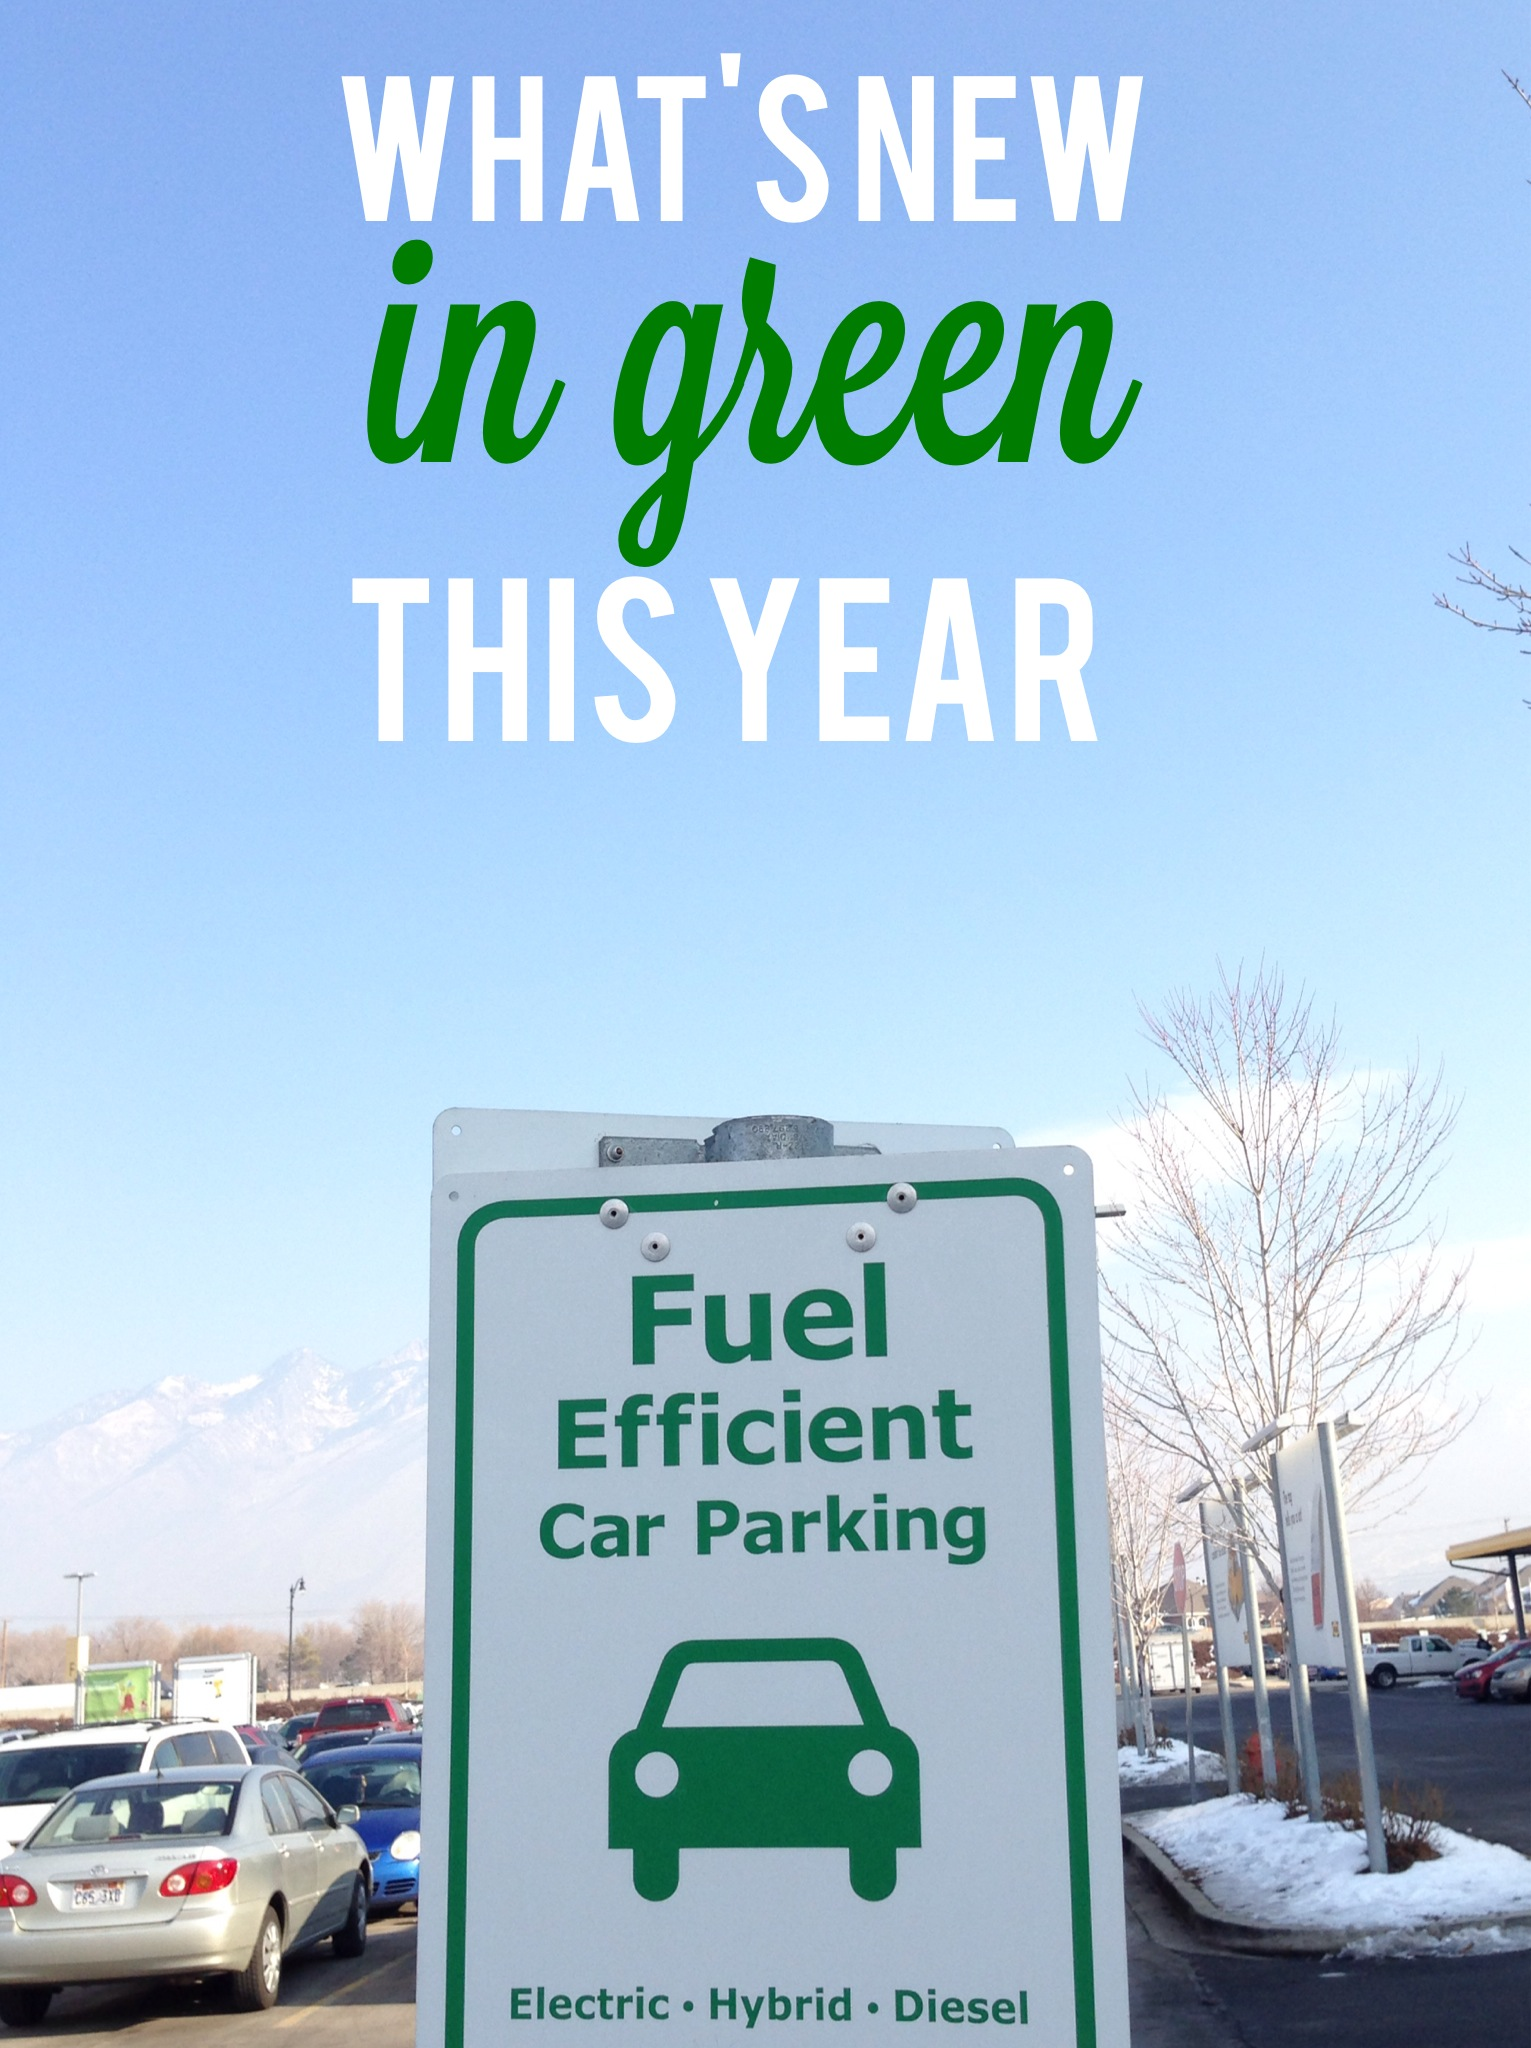 going green in 2014: it has a nice ring to it, right?